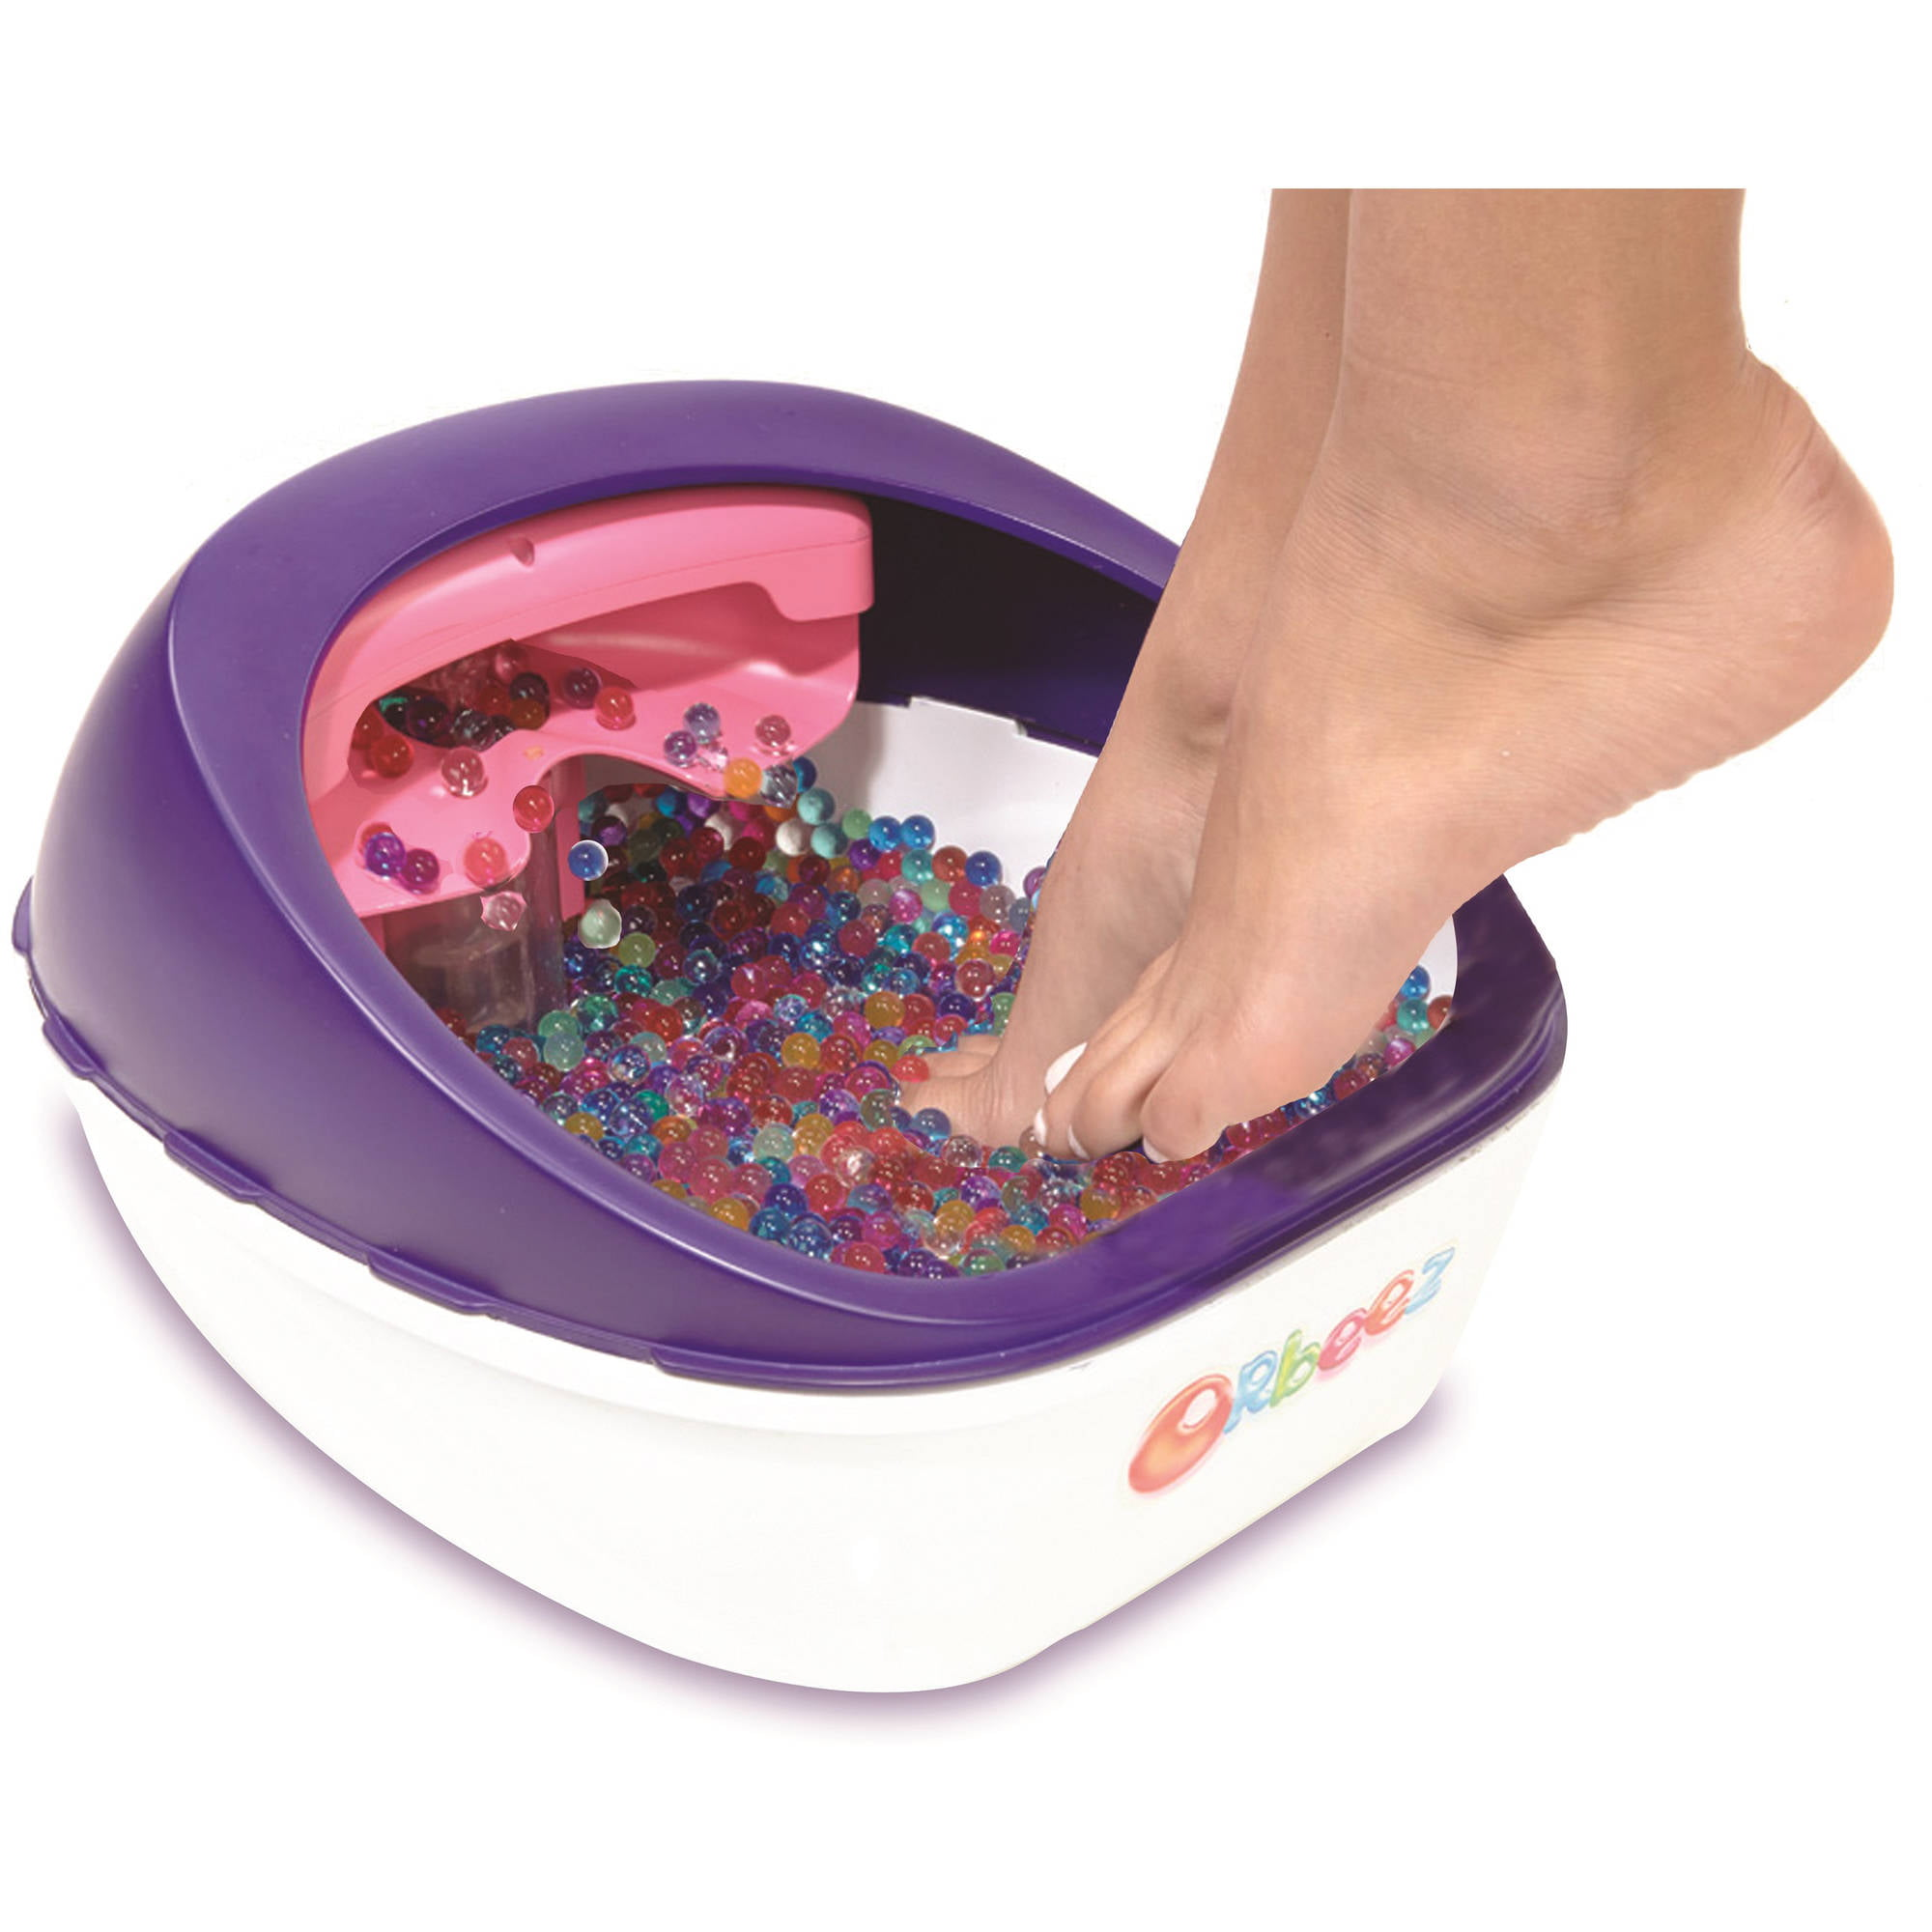 Orbeez Ultimate Soothing Spa - Walmart.com